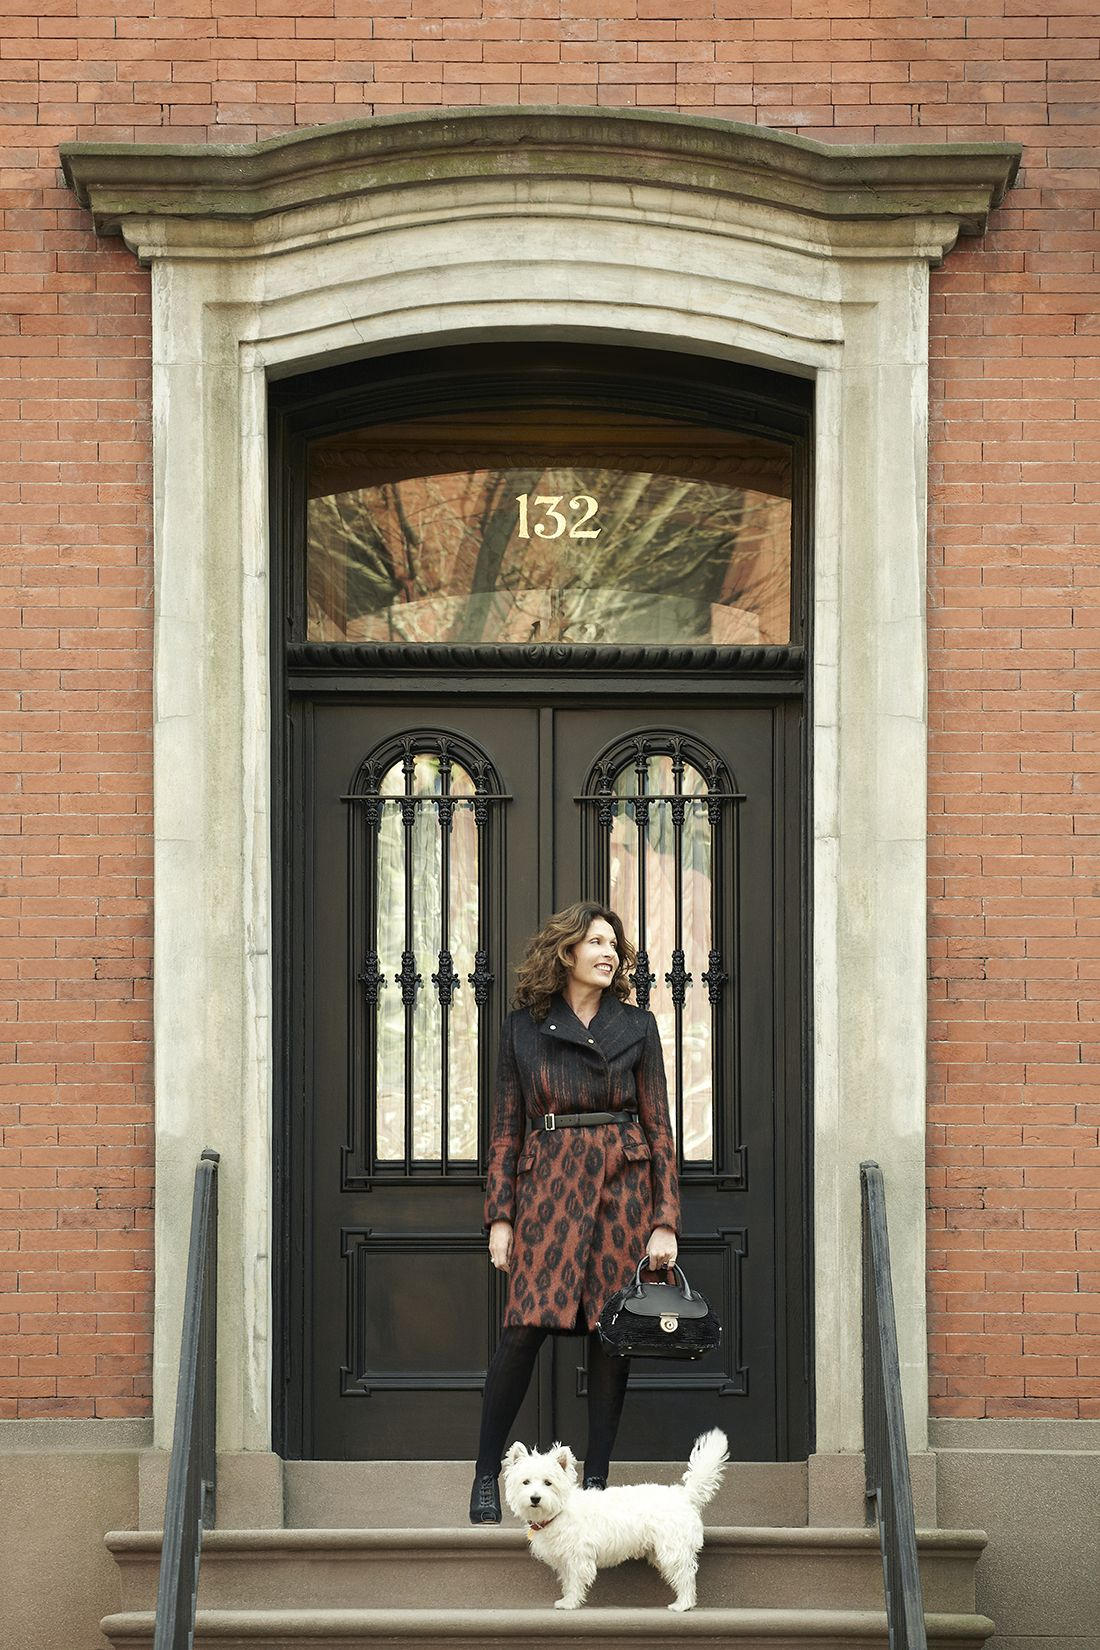 Jacqueline Beaurang at home in Manhattan. Explore her legacy at www. Ferragamo.com Fiamma dc2614a14e9ee